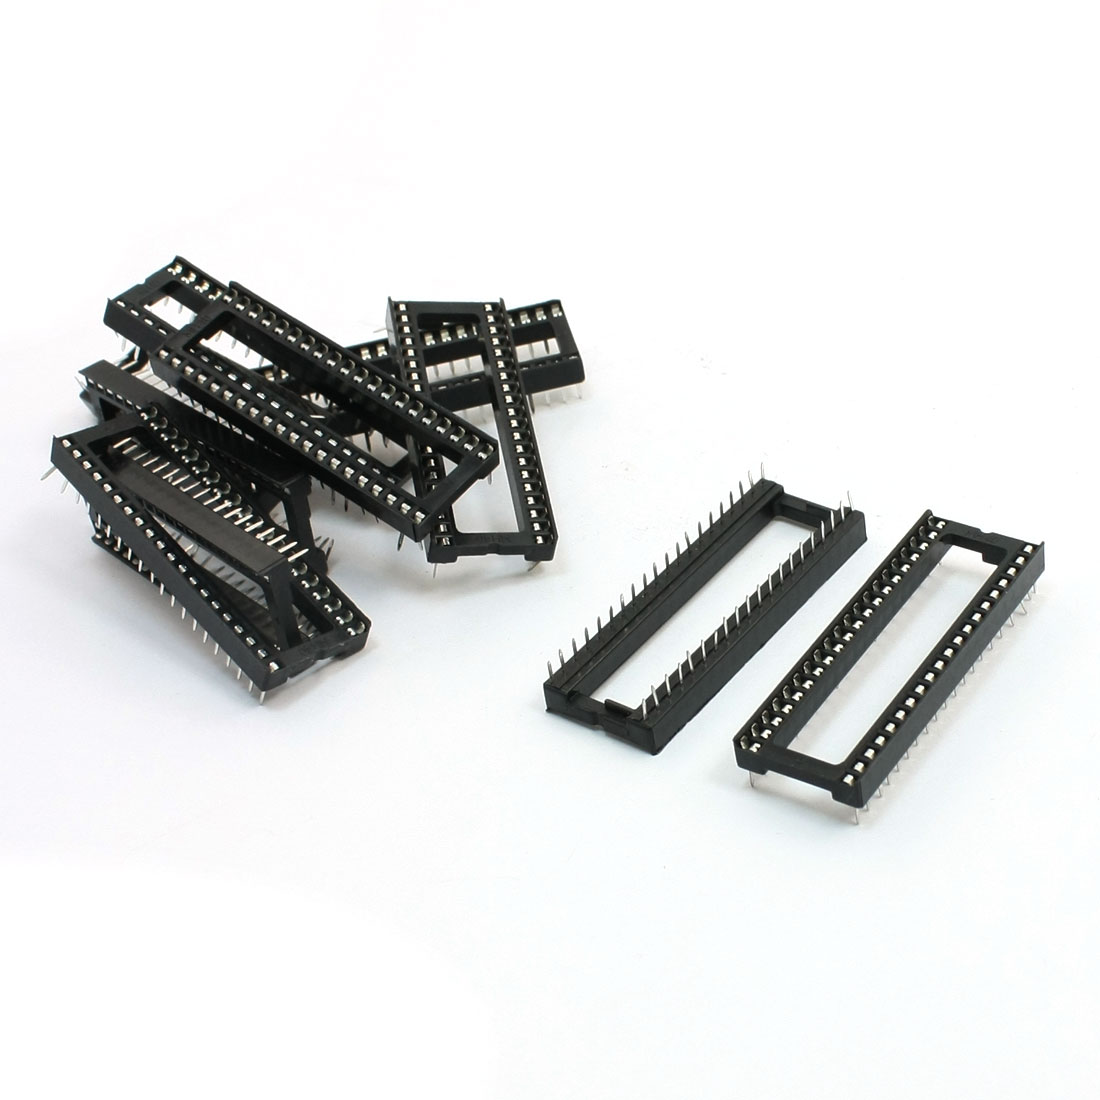 10 Pcs Double Row Through Hole 40 Pin DIP IC Sockets Adapter